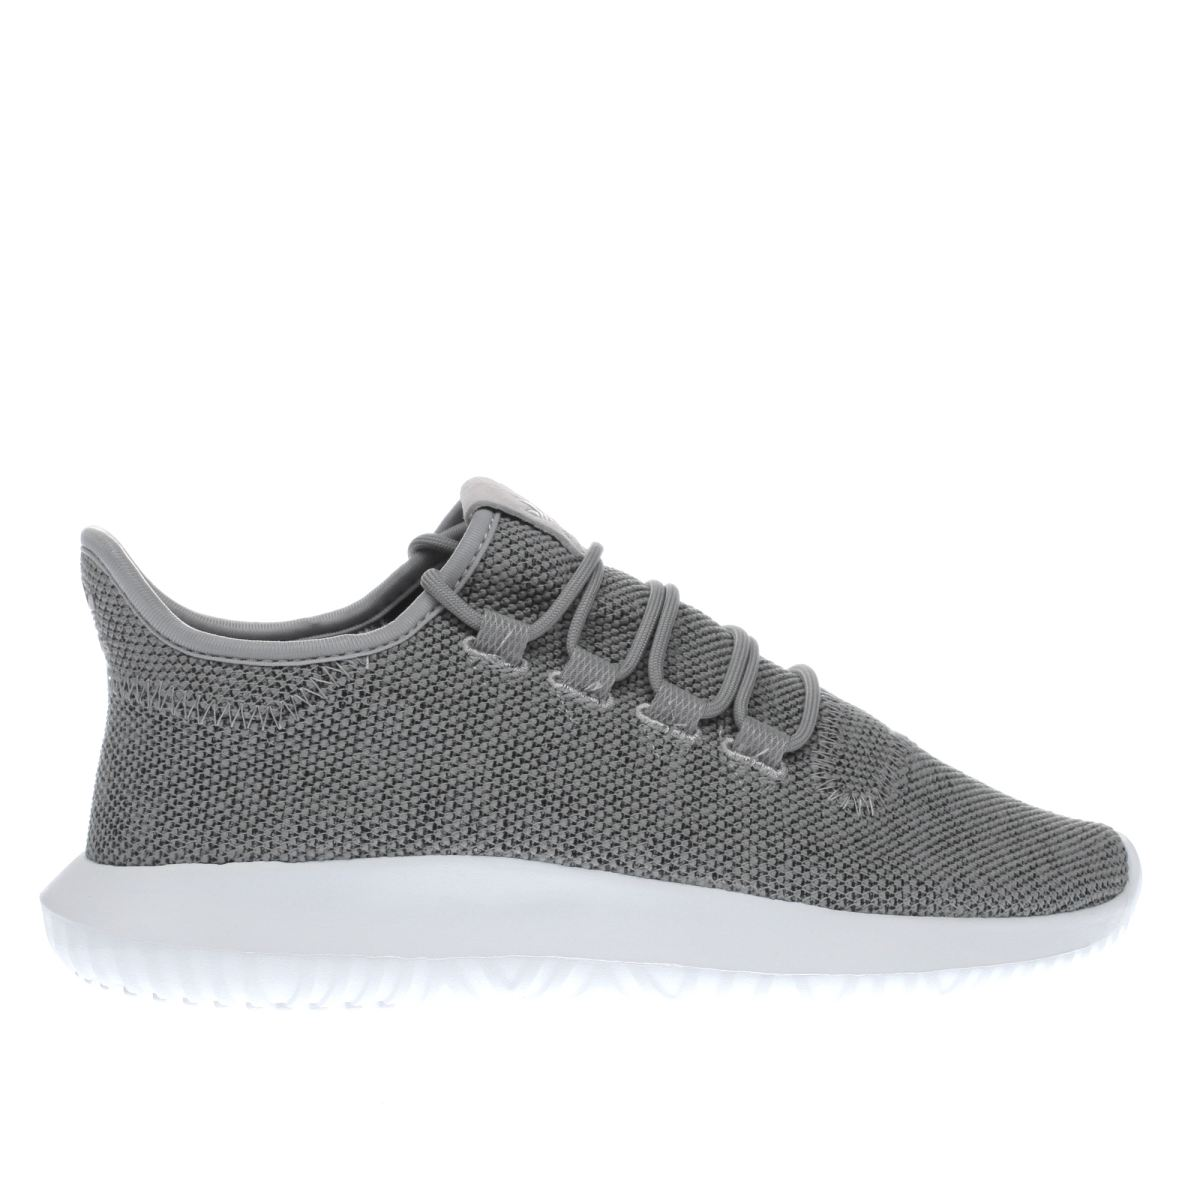 ADIDAS TUBULAR Runner B 41275 men 's Athletic Shoes gray